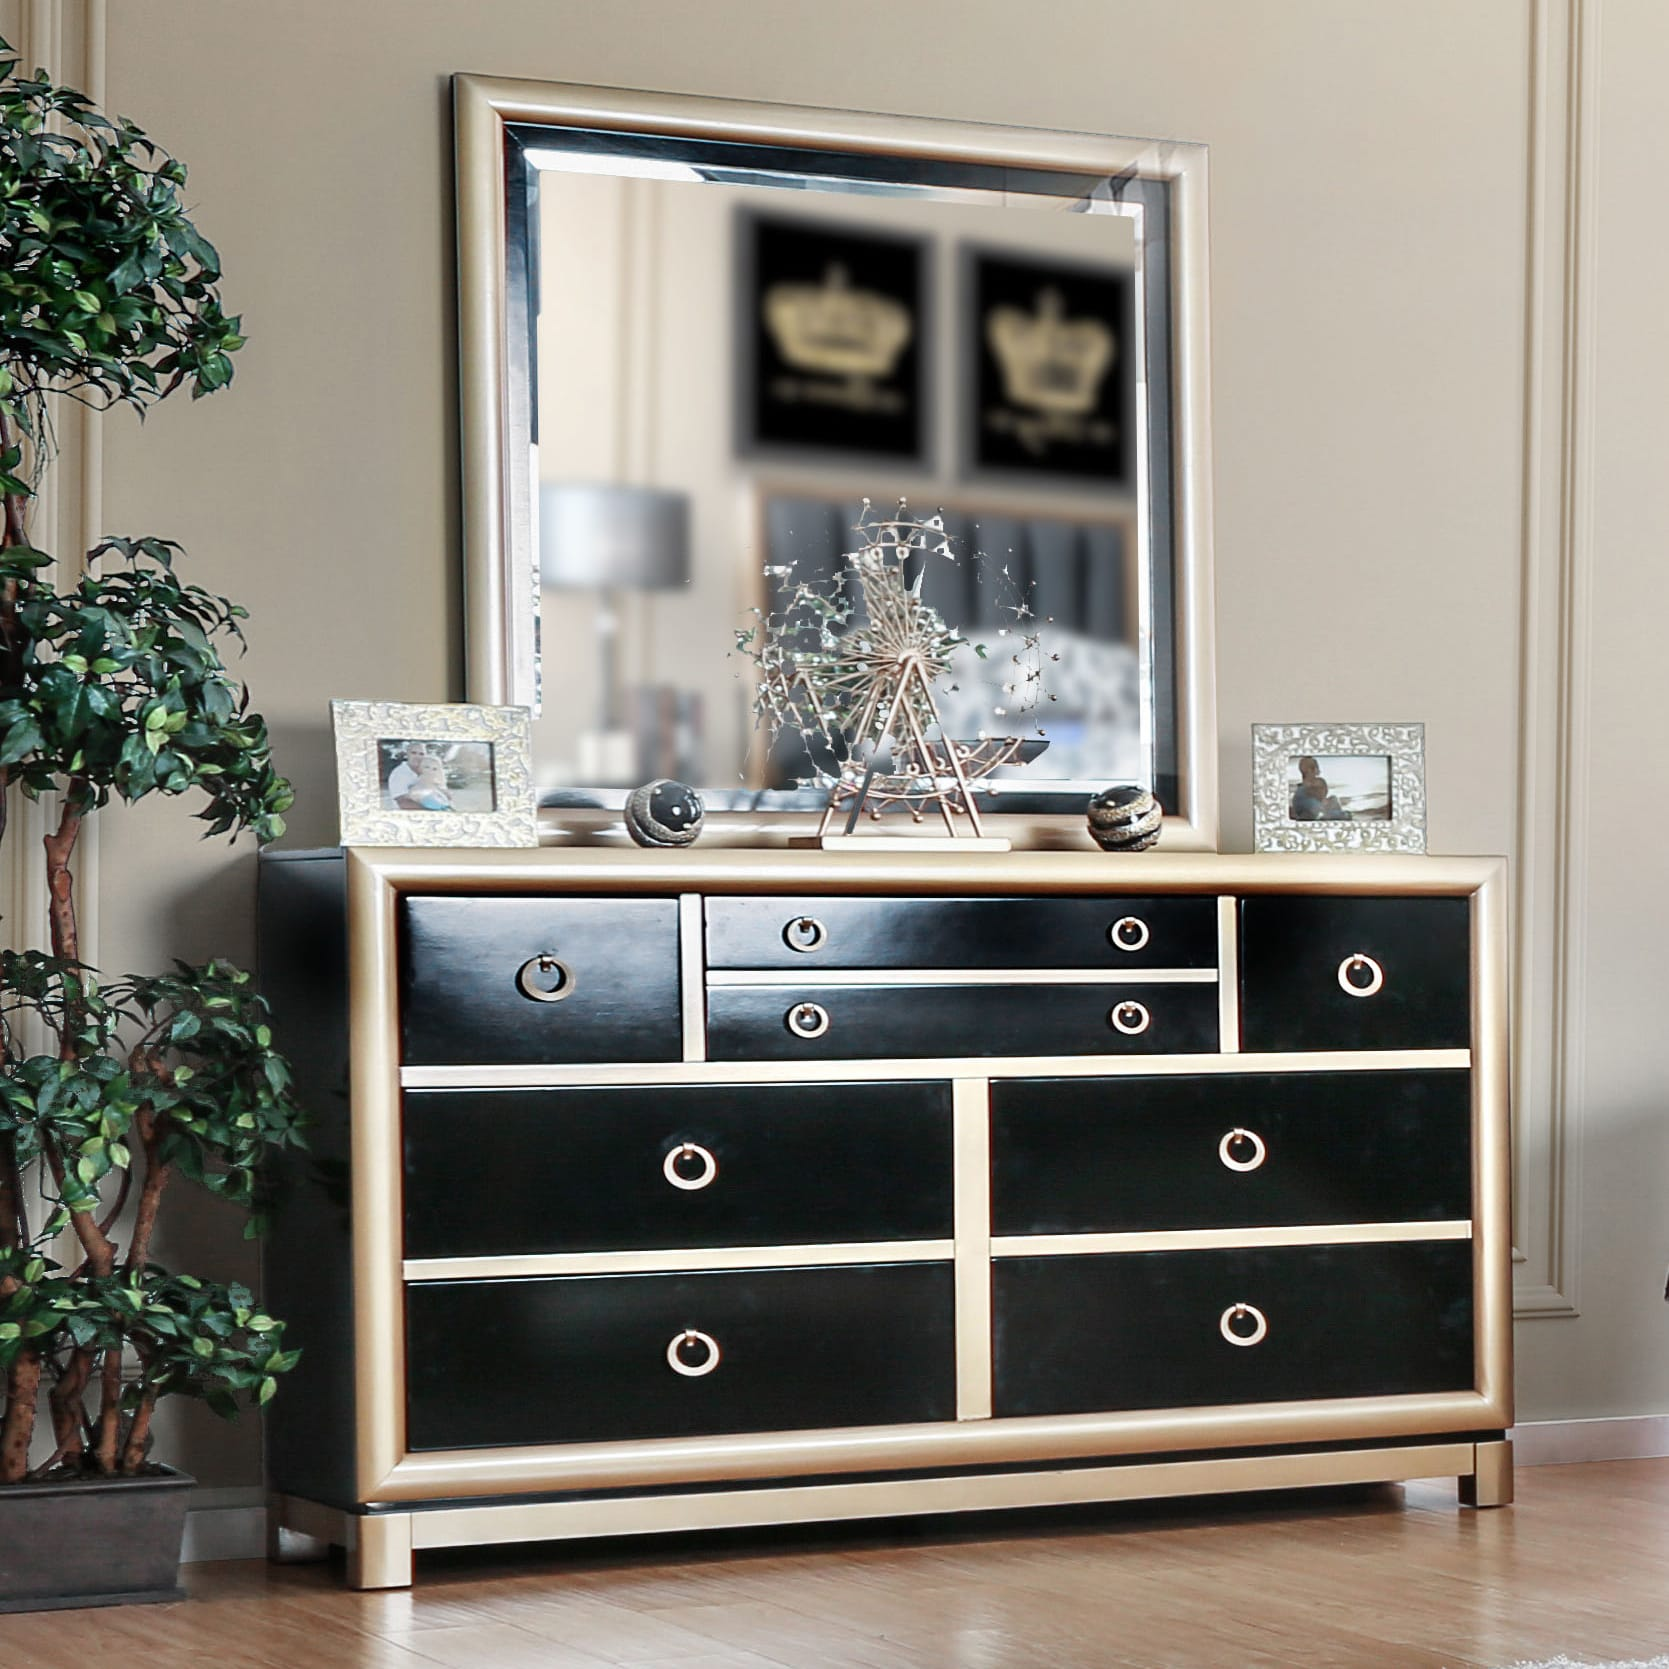 Furniture of America  Lopex Contemporary 2-piece Two-tone Black/Gold Dresser and Mirror Set